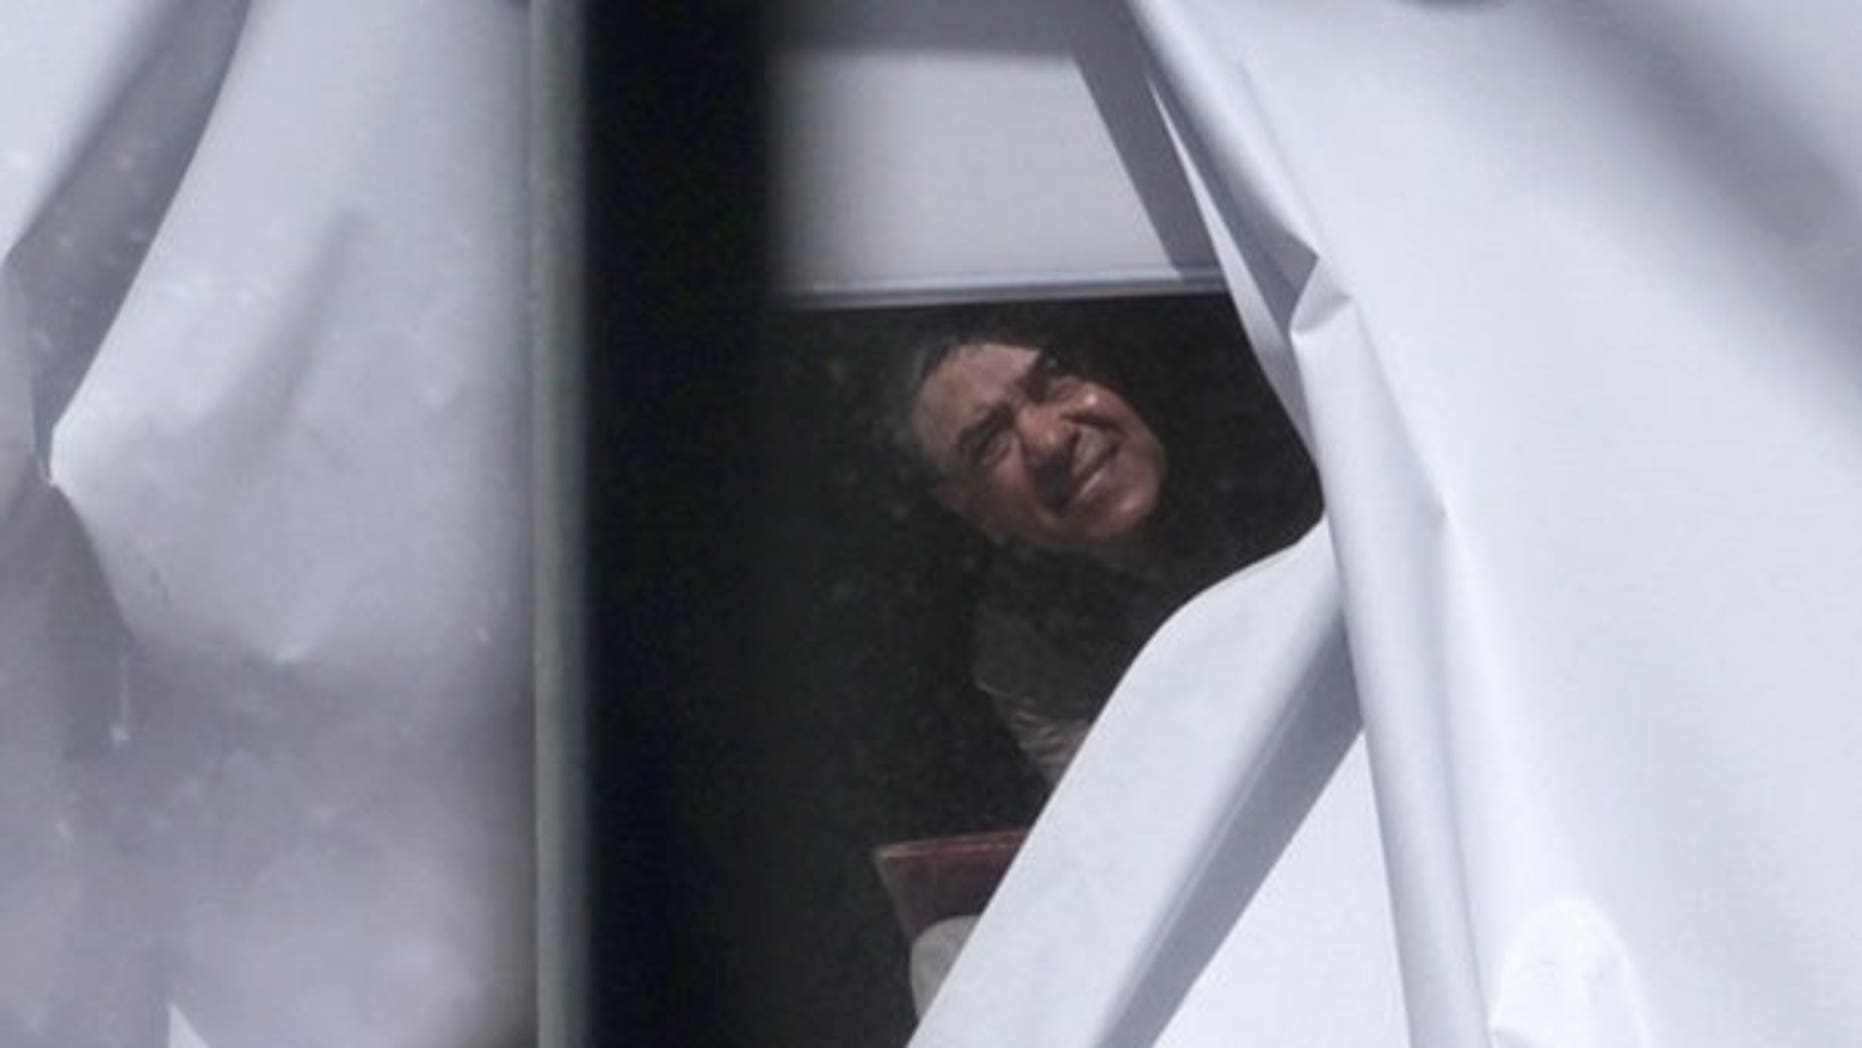 Sept. 6: A man believed to have strapped what appeared to be a bomb to himself looks out of a window next to the Parramatta court building near Sydney.